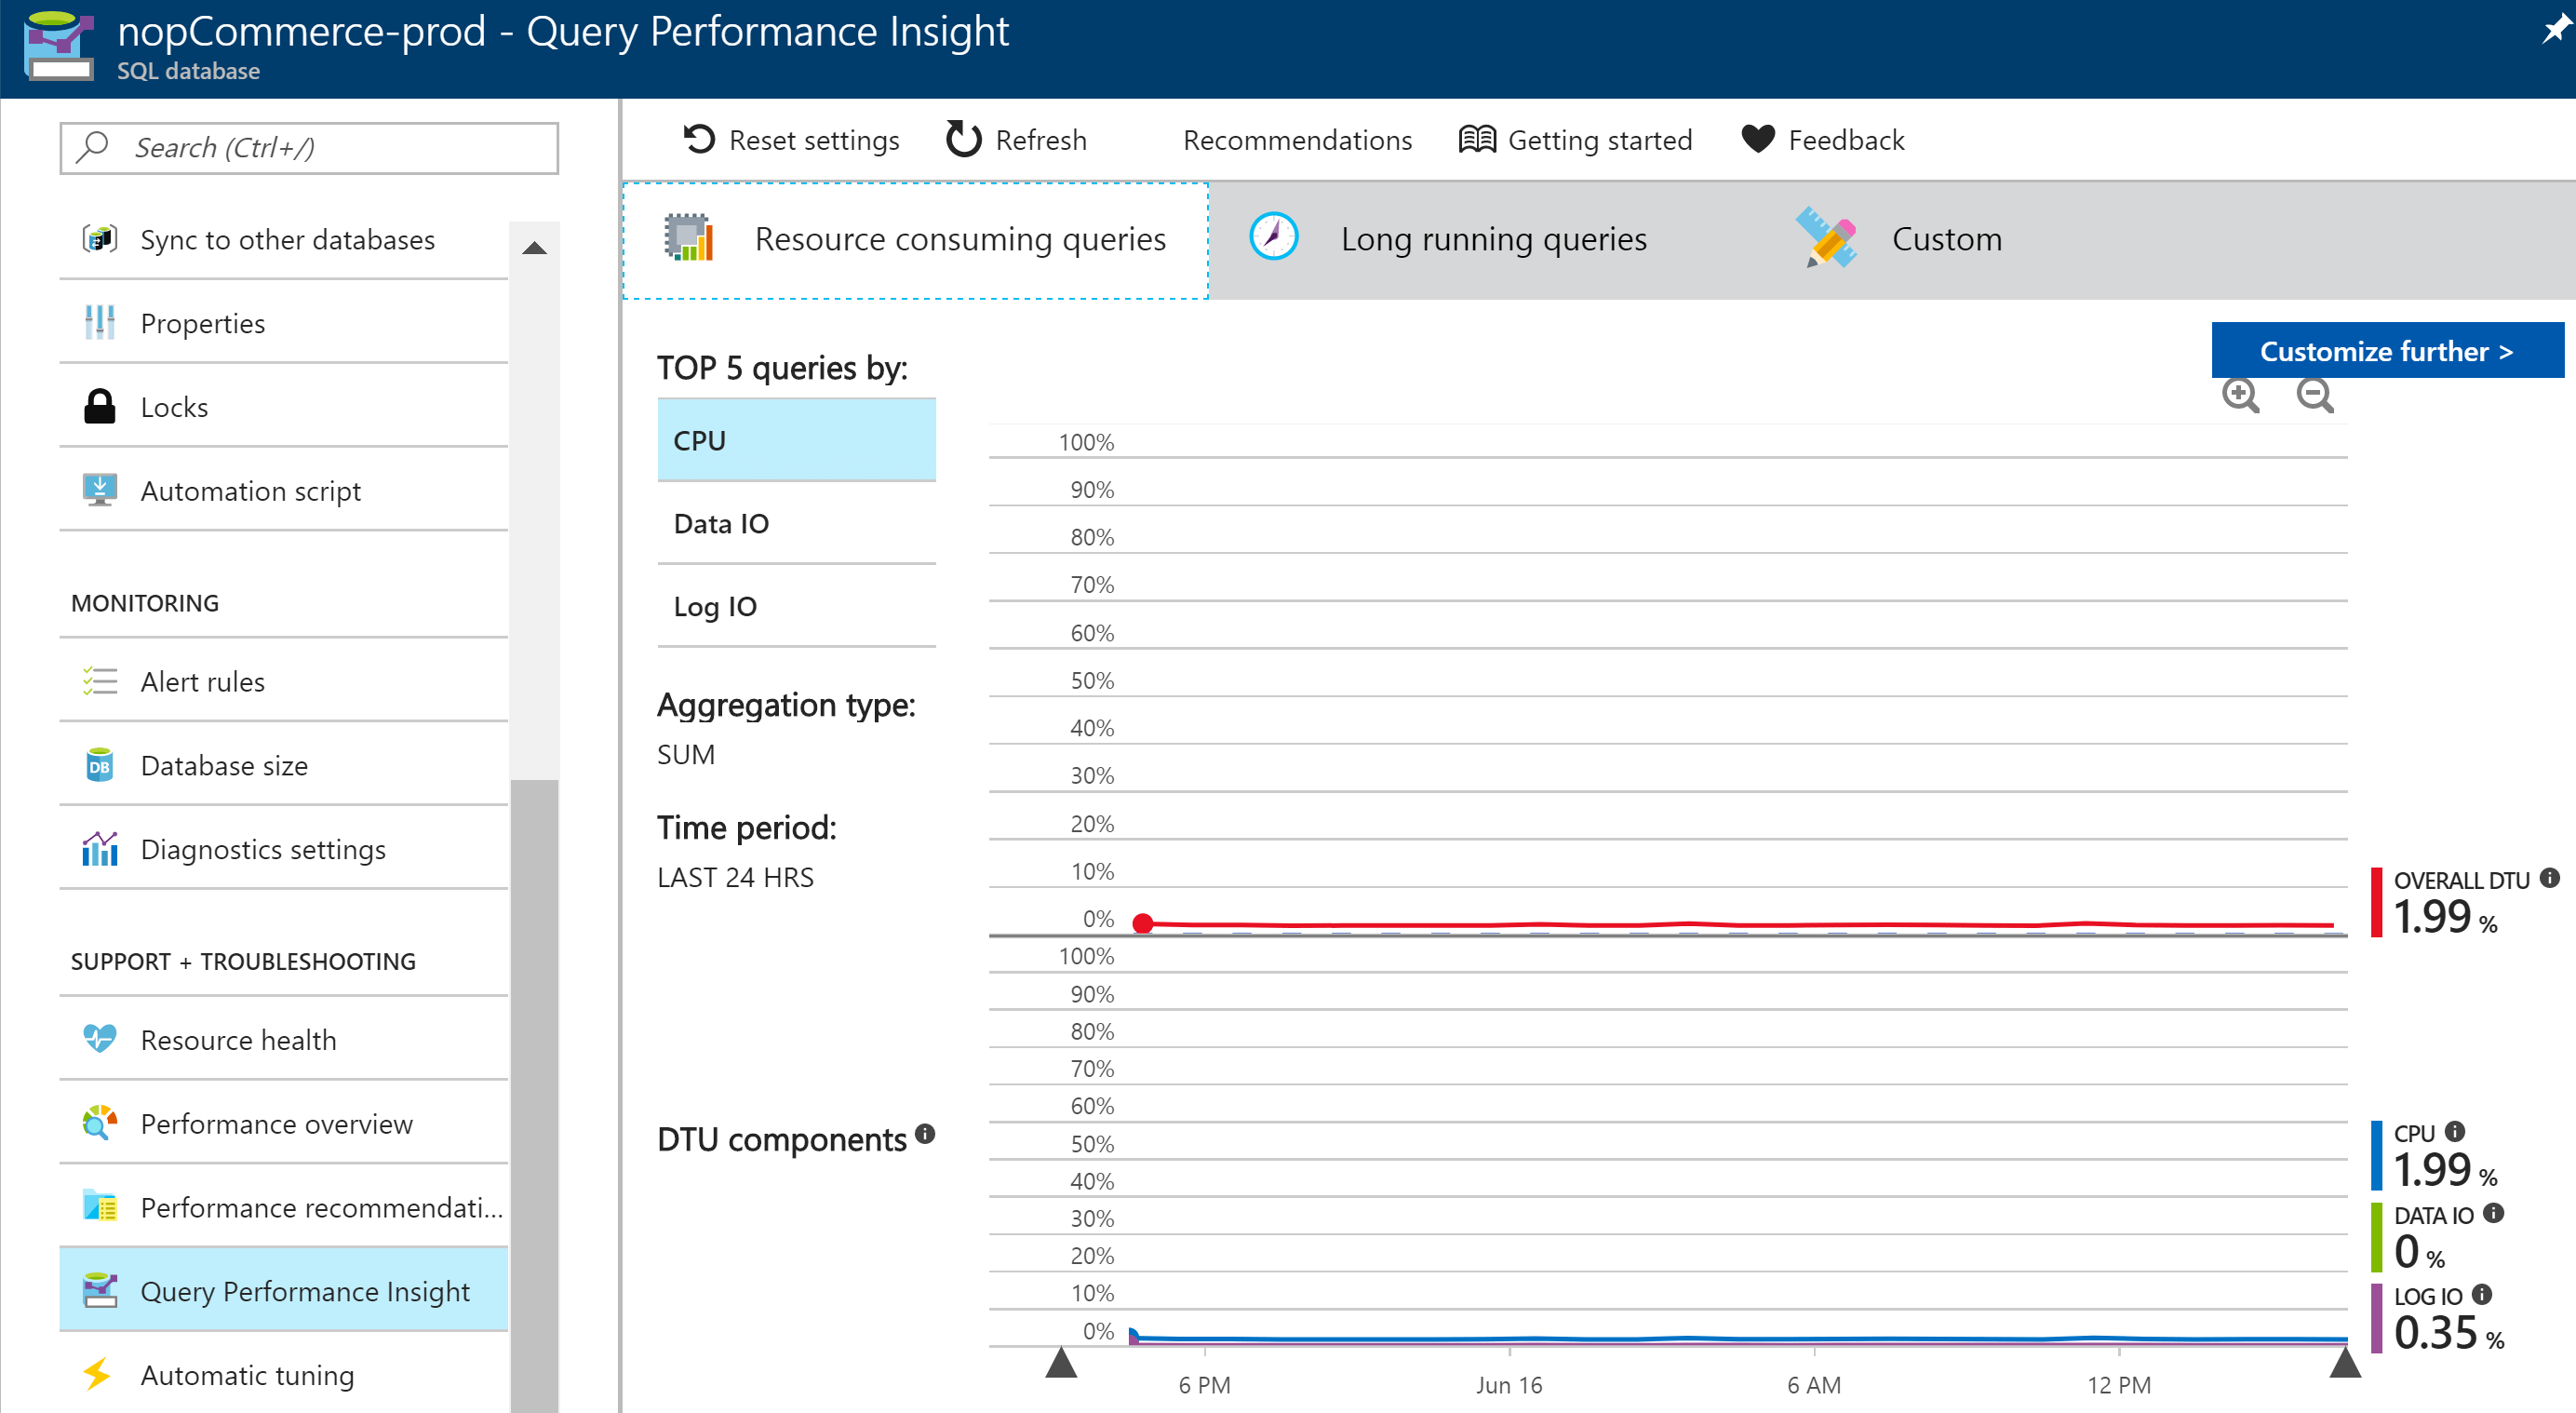 SQL Azure Top Queries